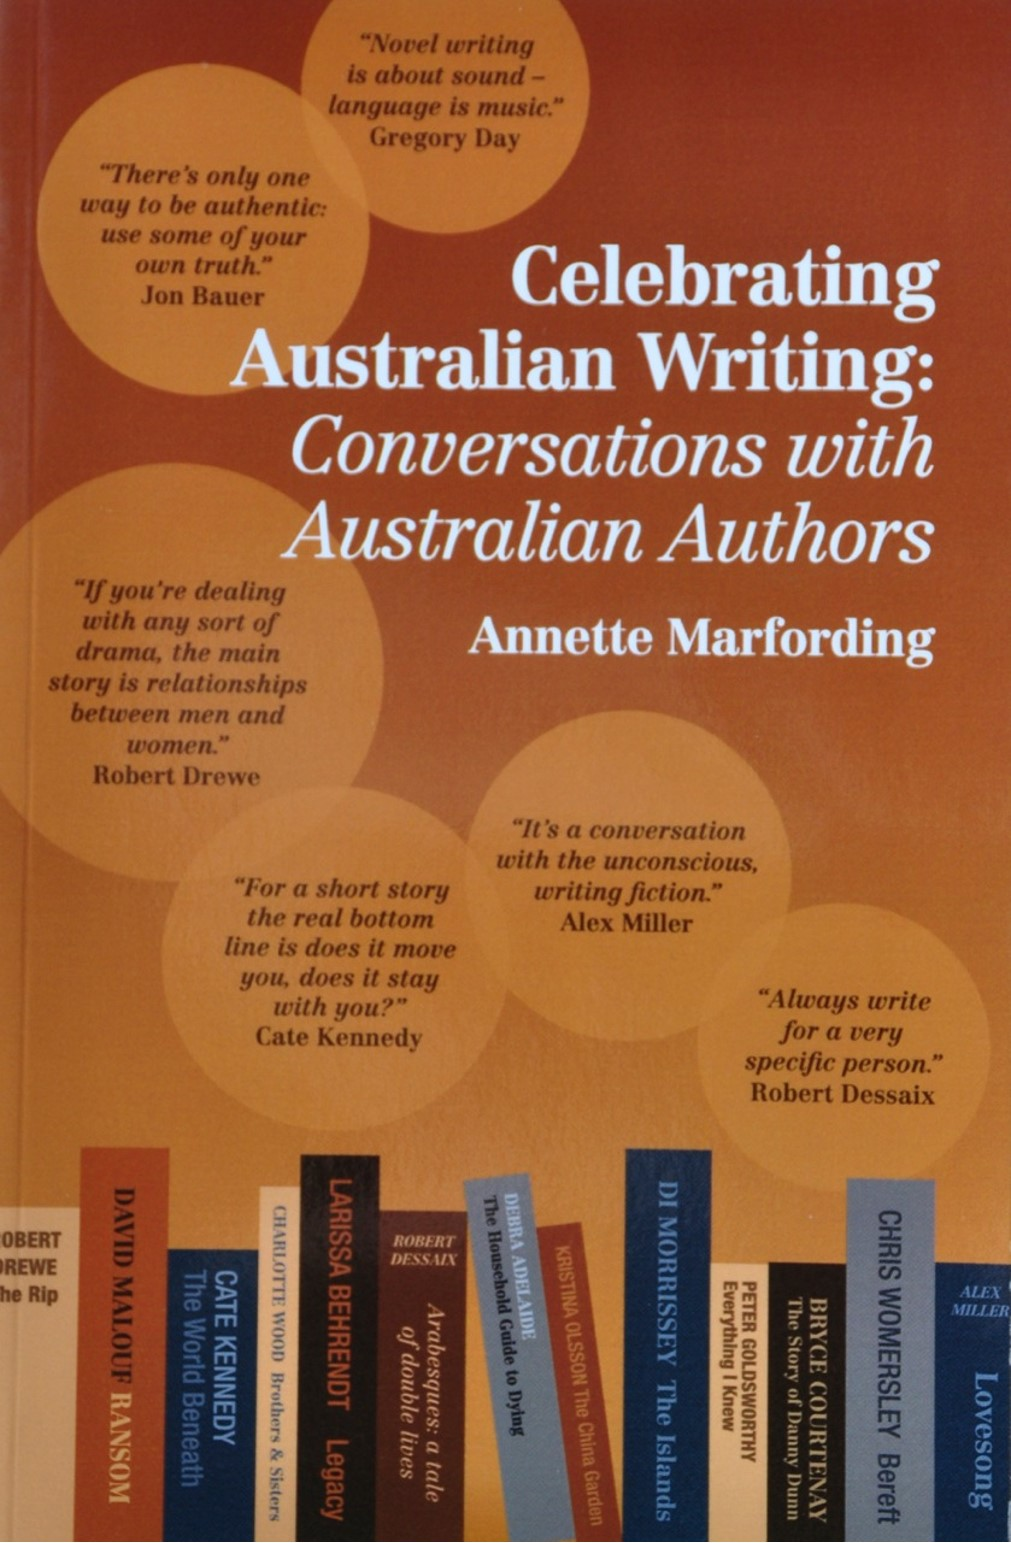 Annette Marfording's book Celebrating Australian Writing: Conversations with Australian Authors